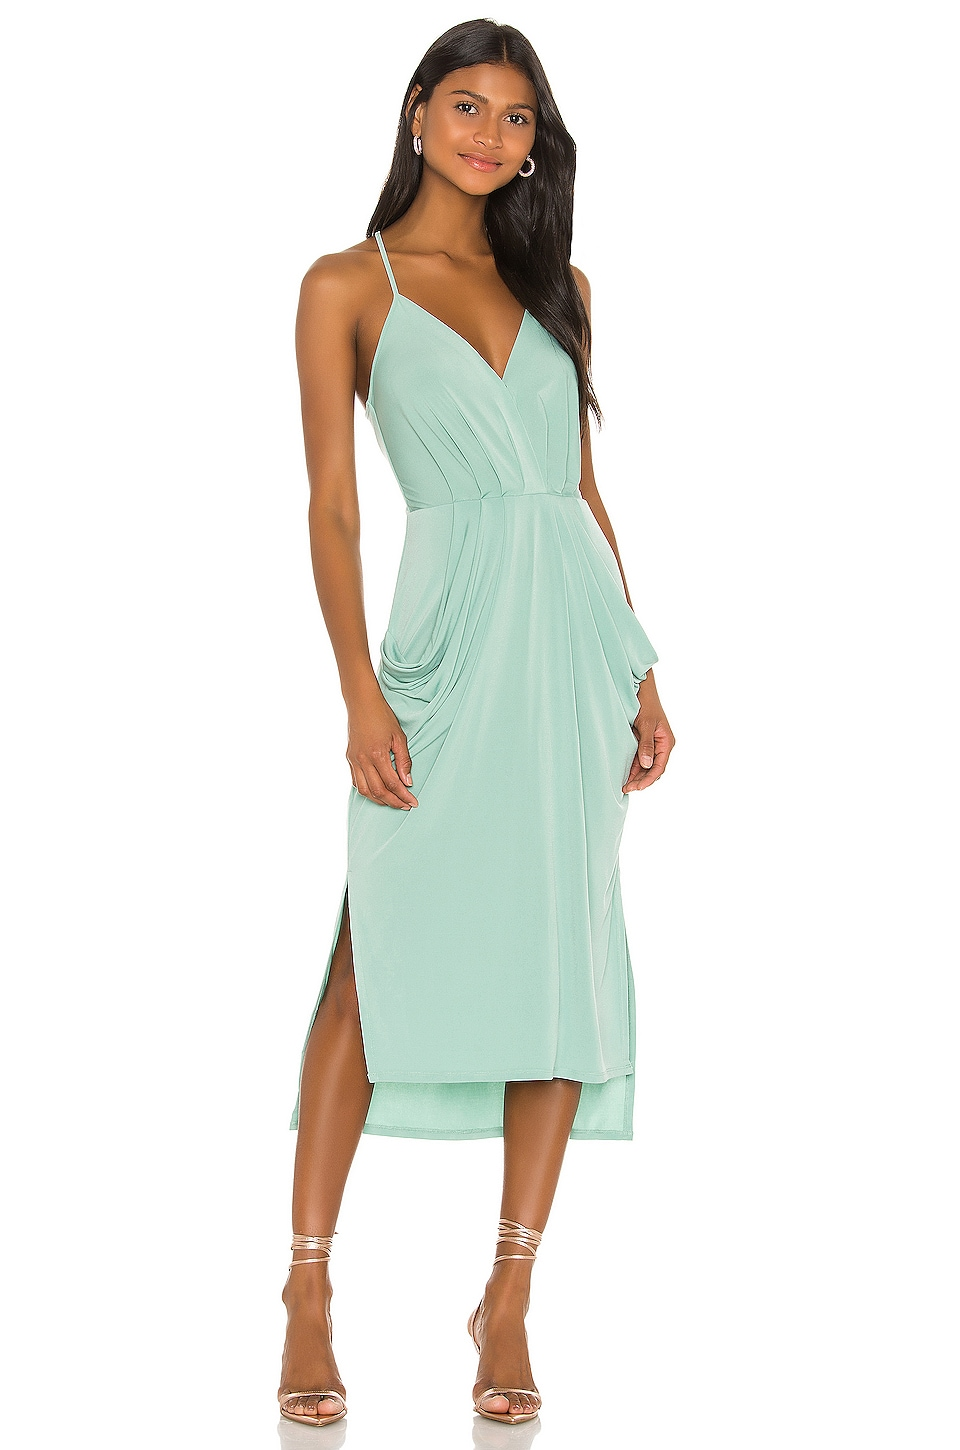 Faux Wrap Midi Dress             BCBGeneration                                                                                                                                         Sale price:                                                                       CA$ 51.34                                                                  Previous price:                                                                       CA$ 105.38 12